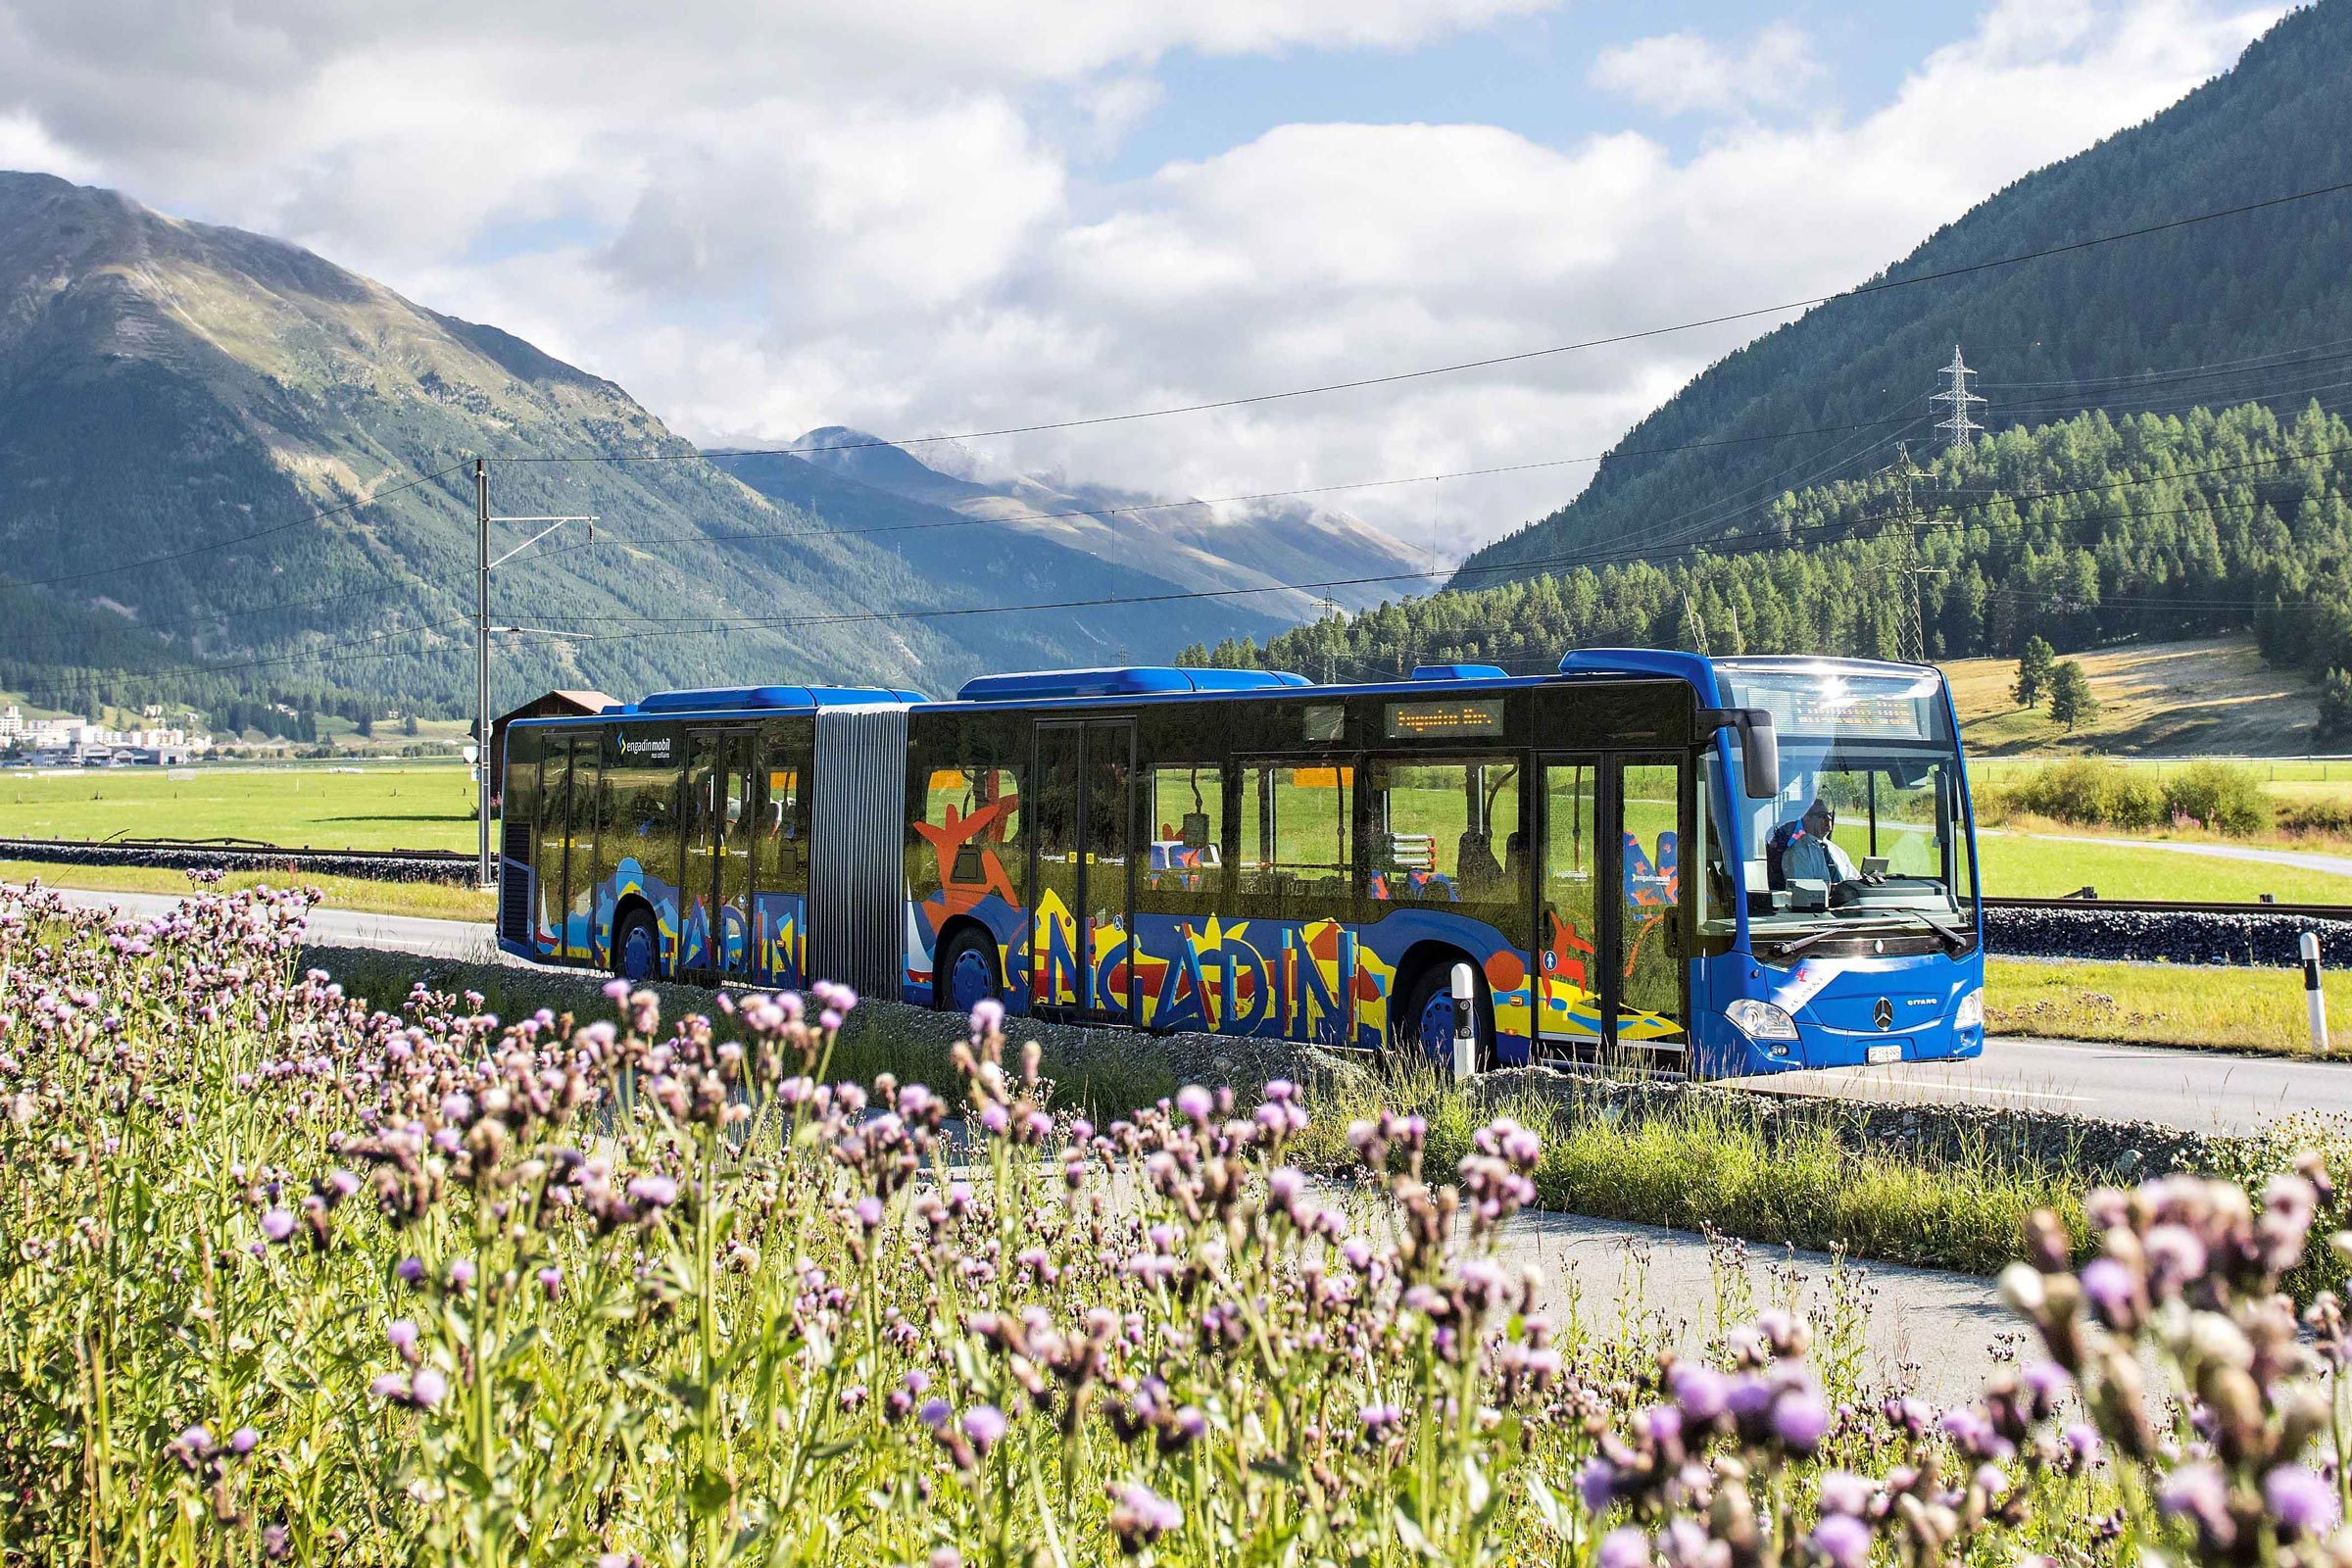 Mountainbike-Transport: Engadin Bus